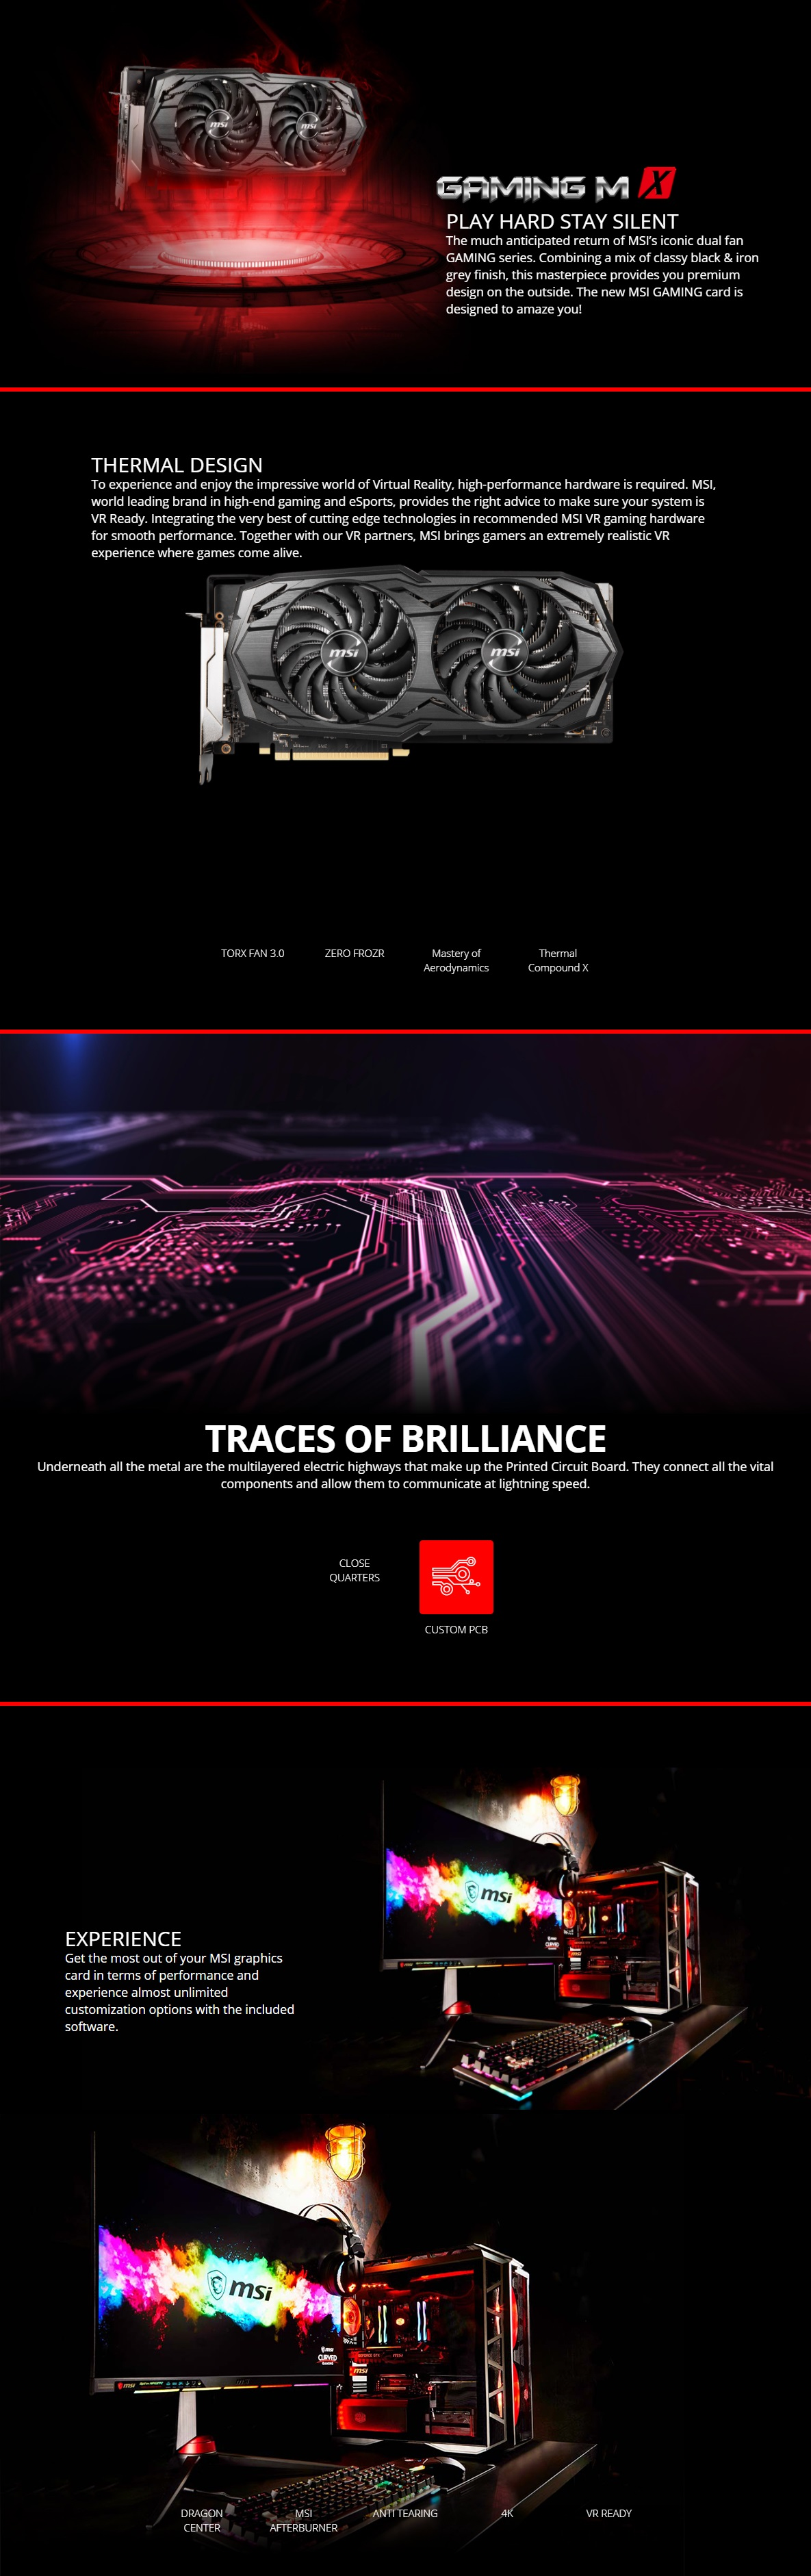 A large marketing image providing additional information about the product MSI Radeon RX 5600 XT GAMING MX 6GB GDDR6 - Additional alt info not provided